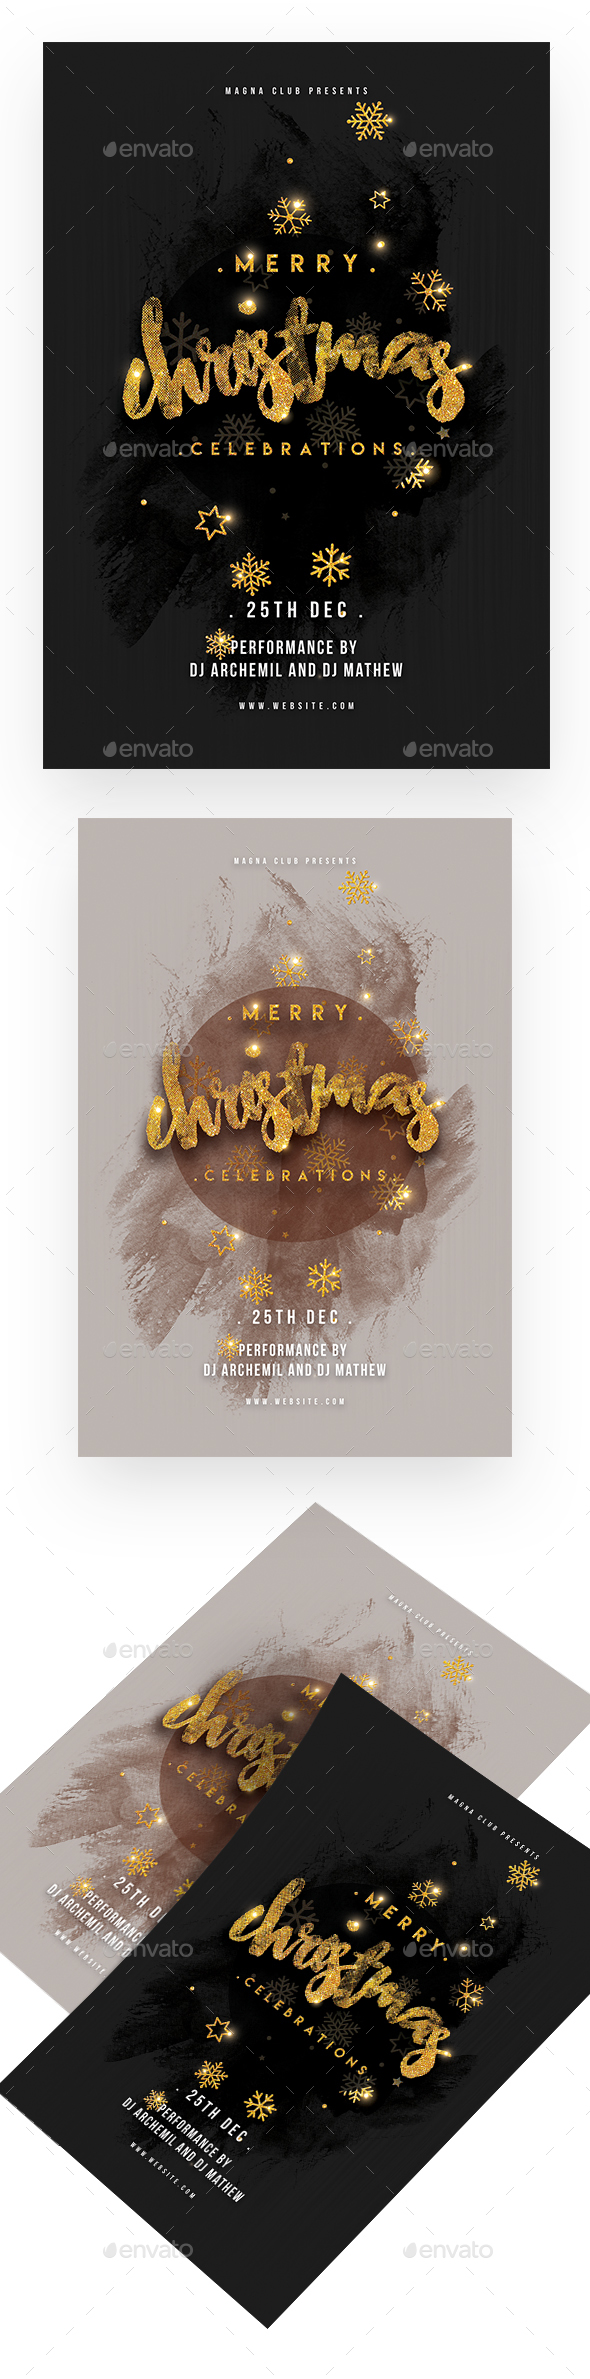 Christmas Celebration Party Flyer - Clubs & Parties Events